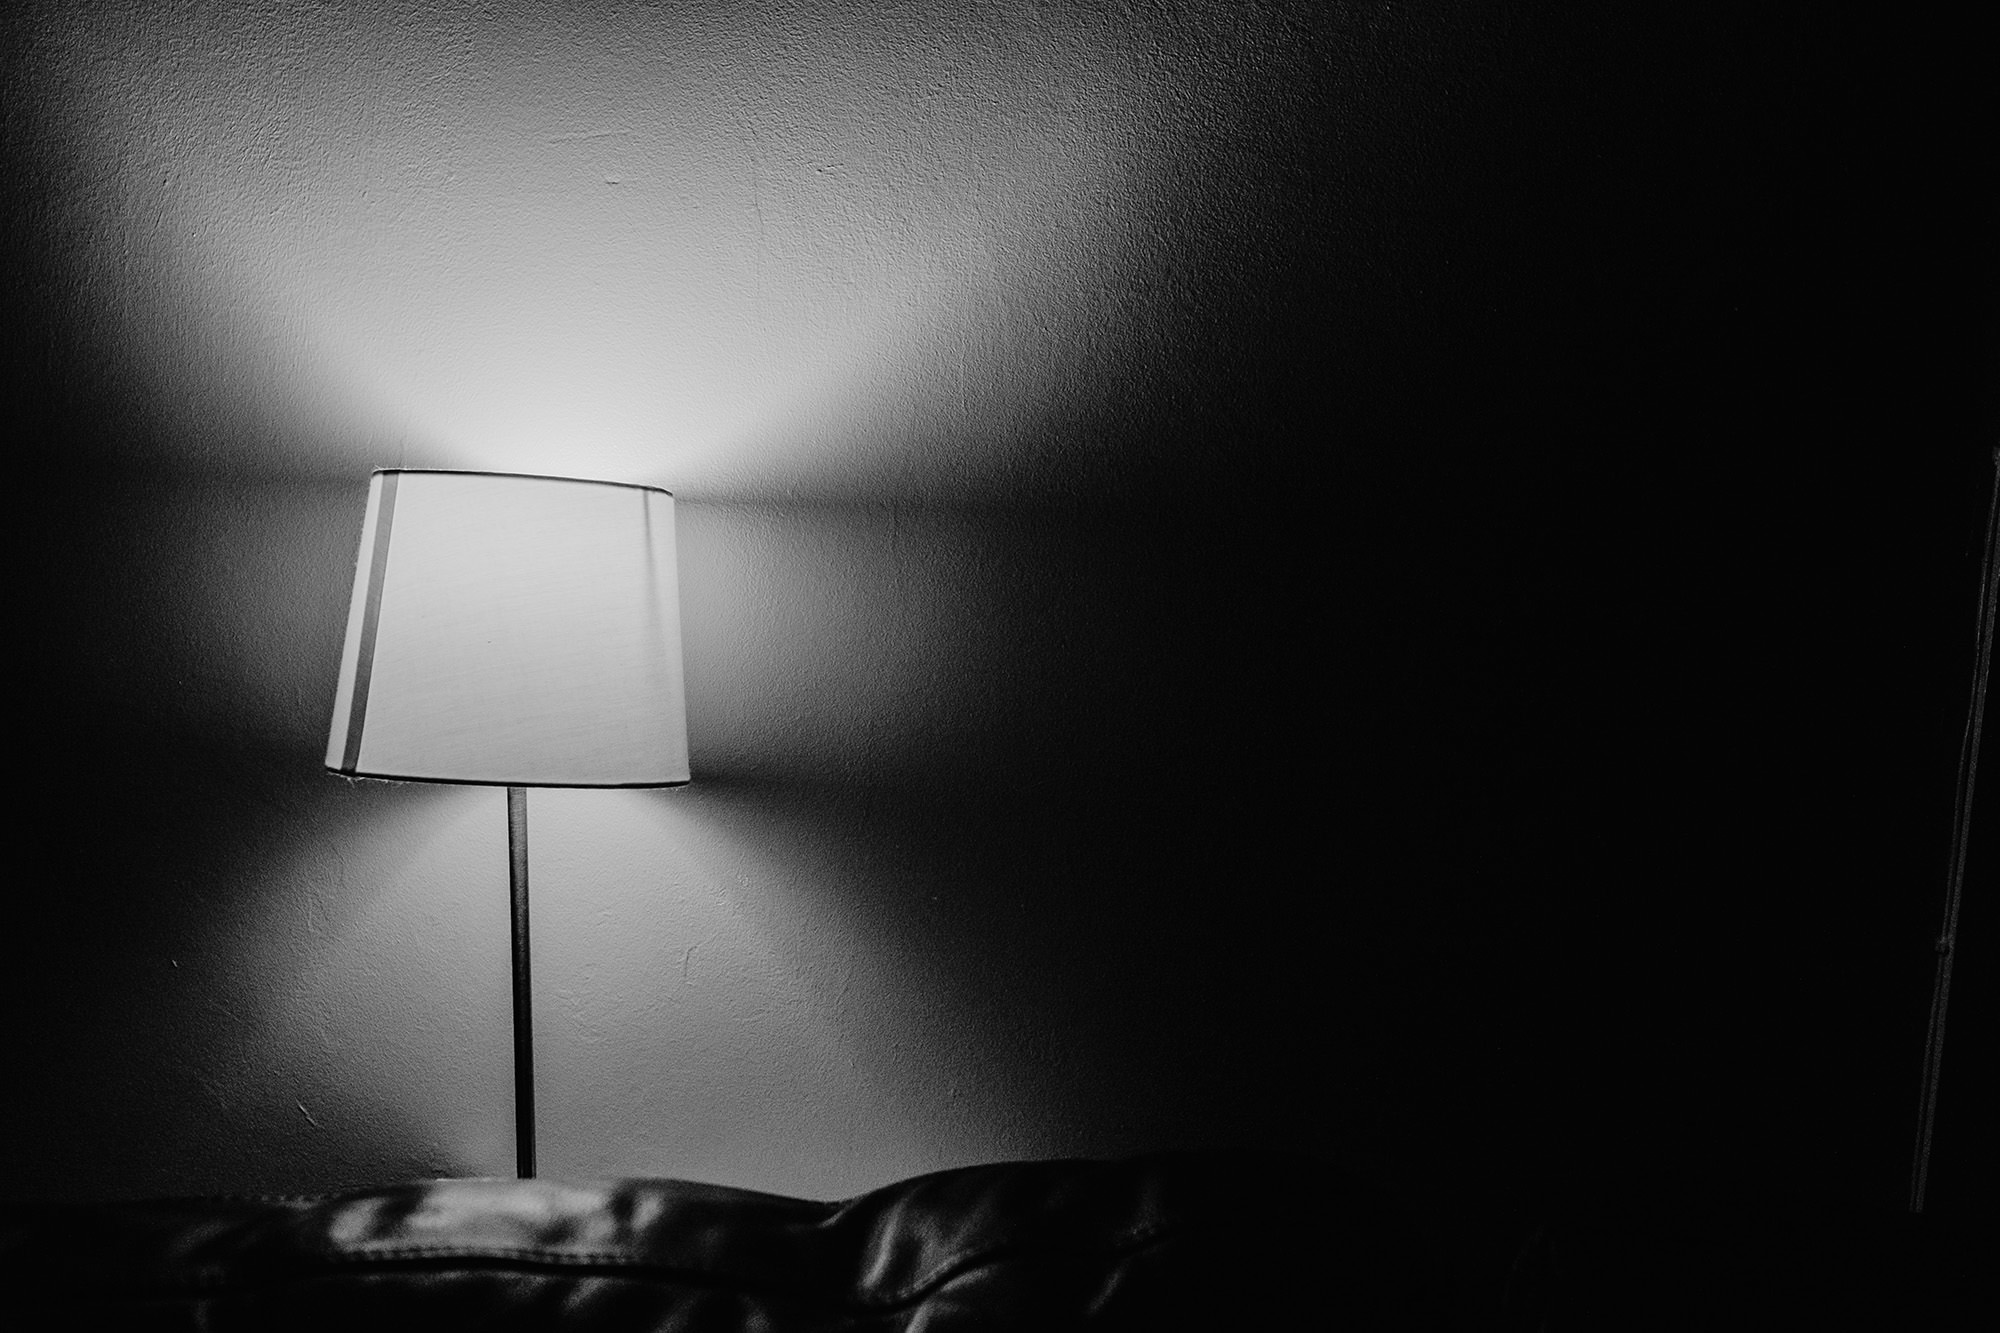 lamp in the dark documenting life